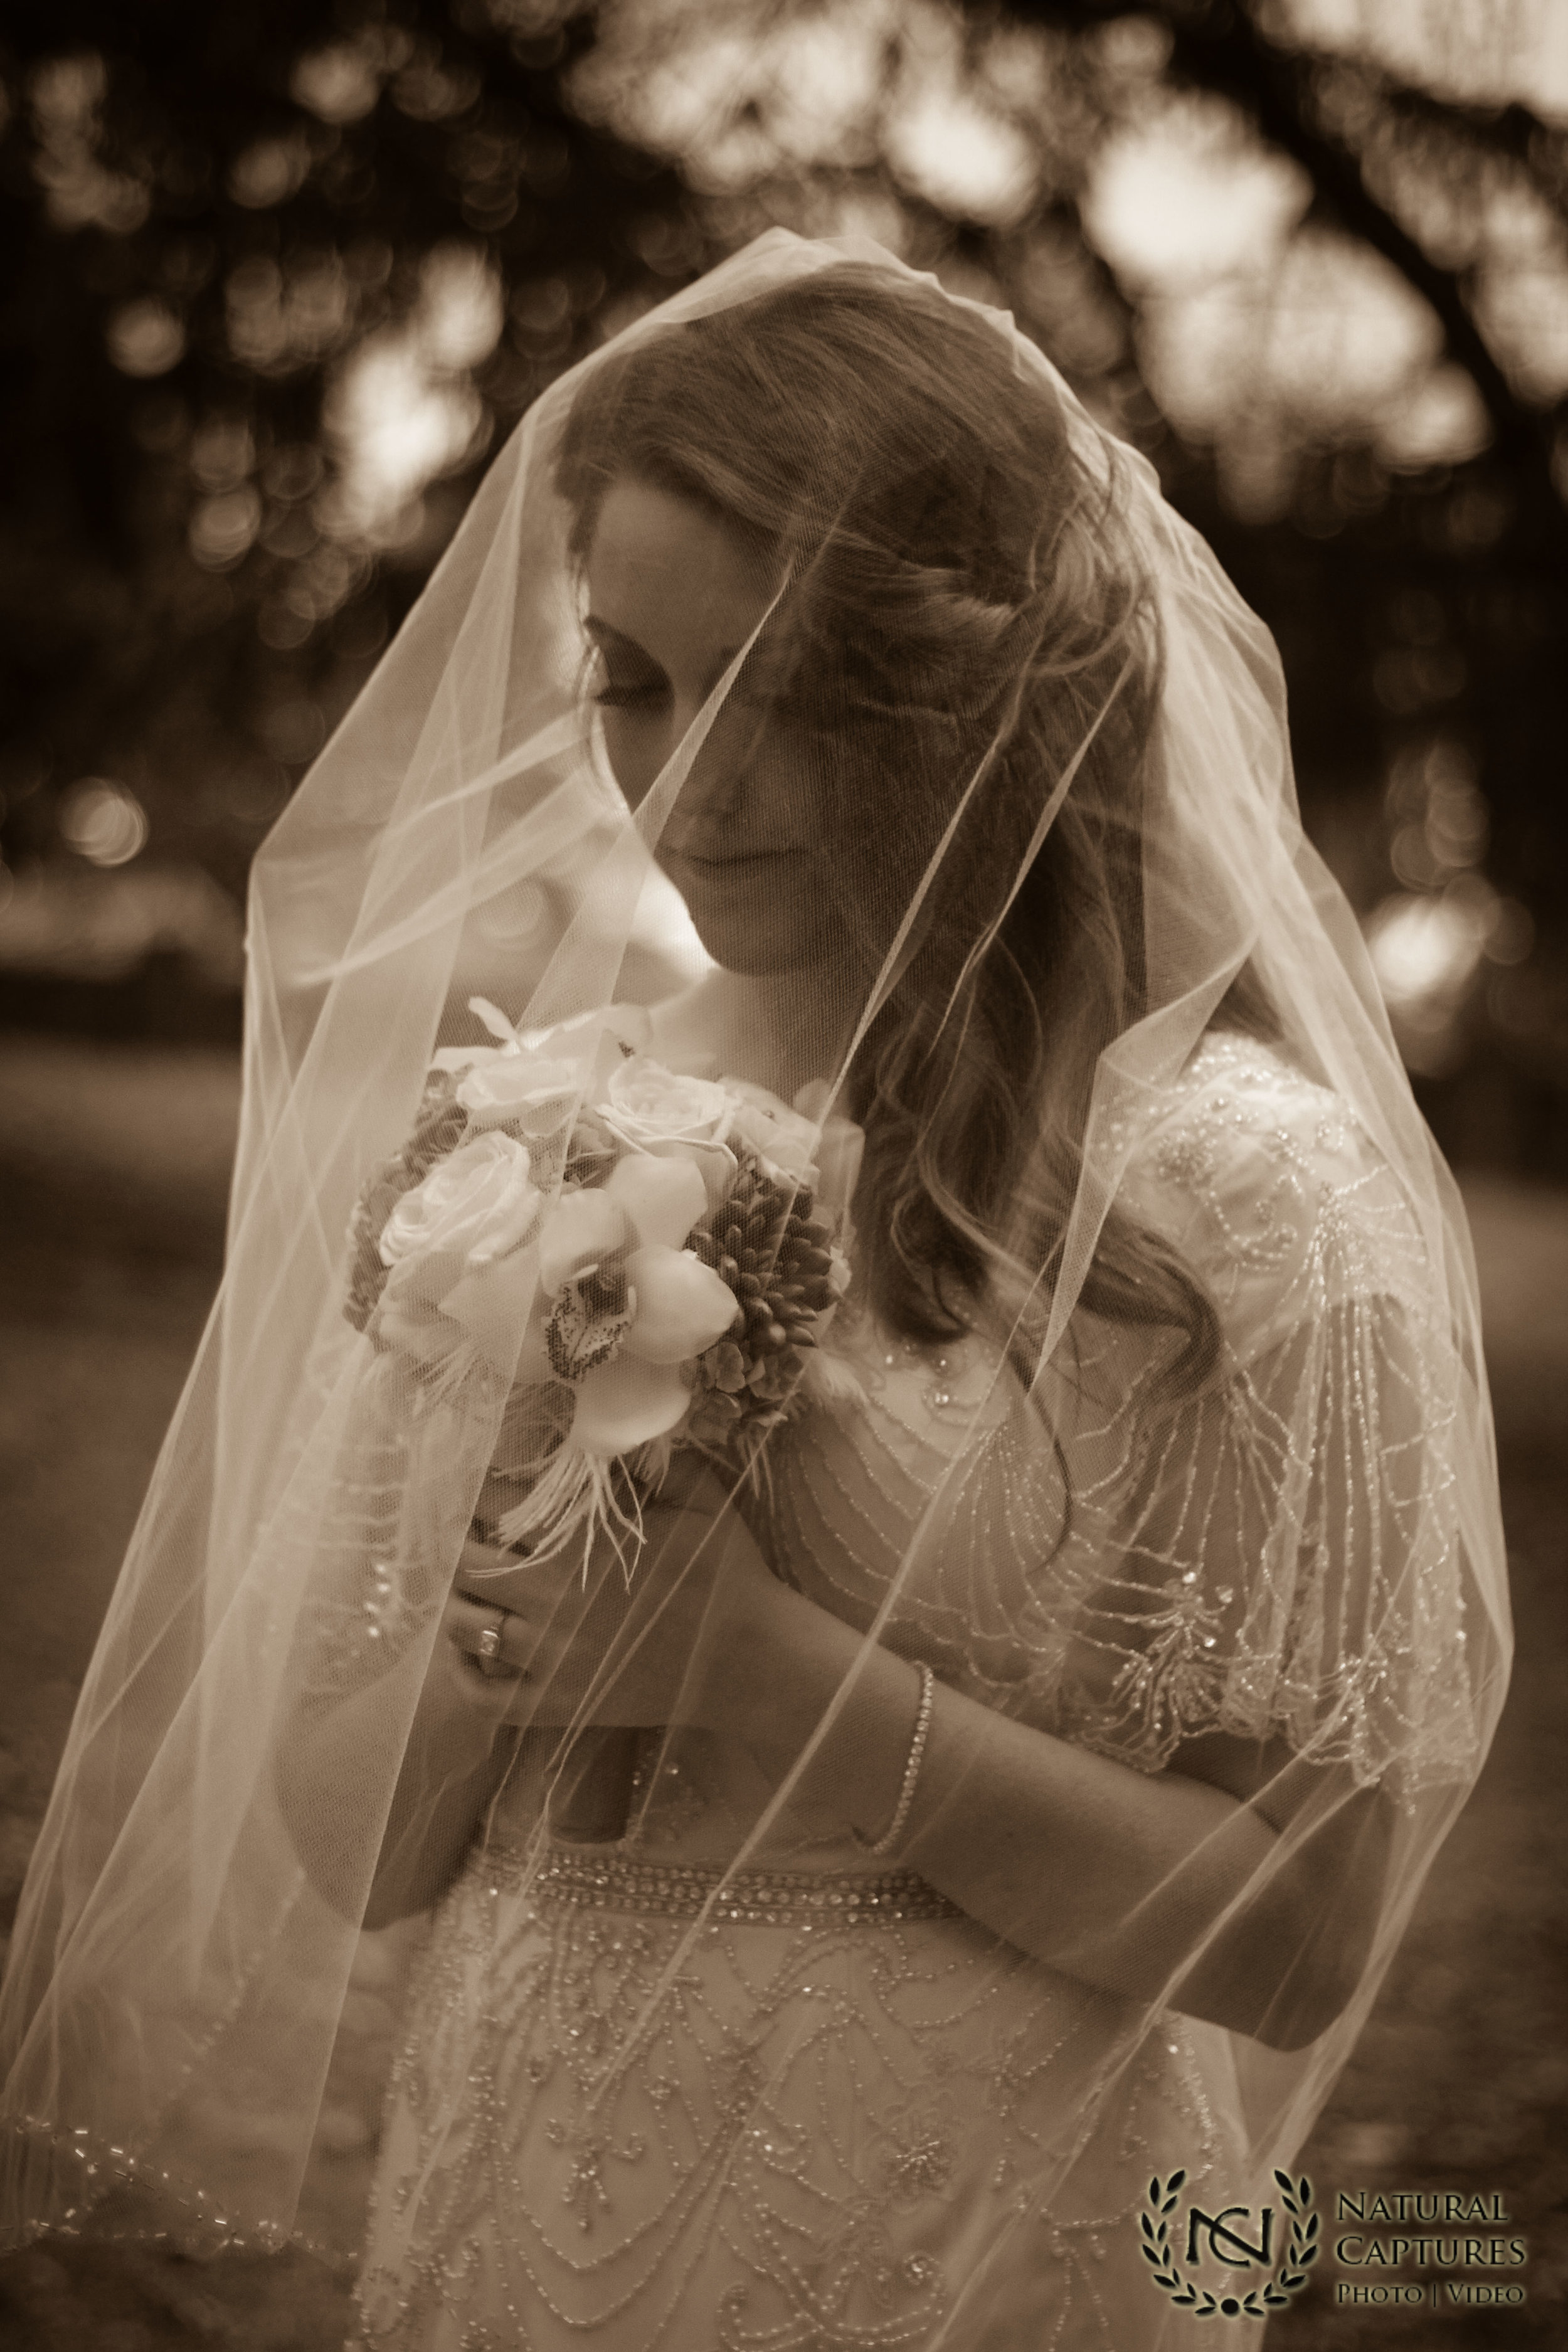 Veiled bride photo - sepia